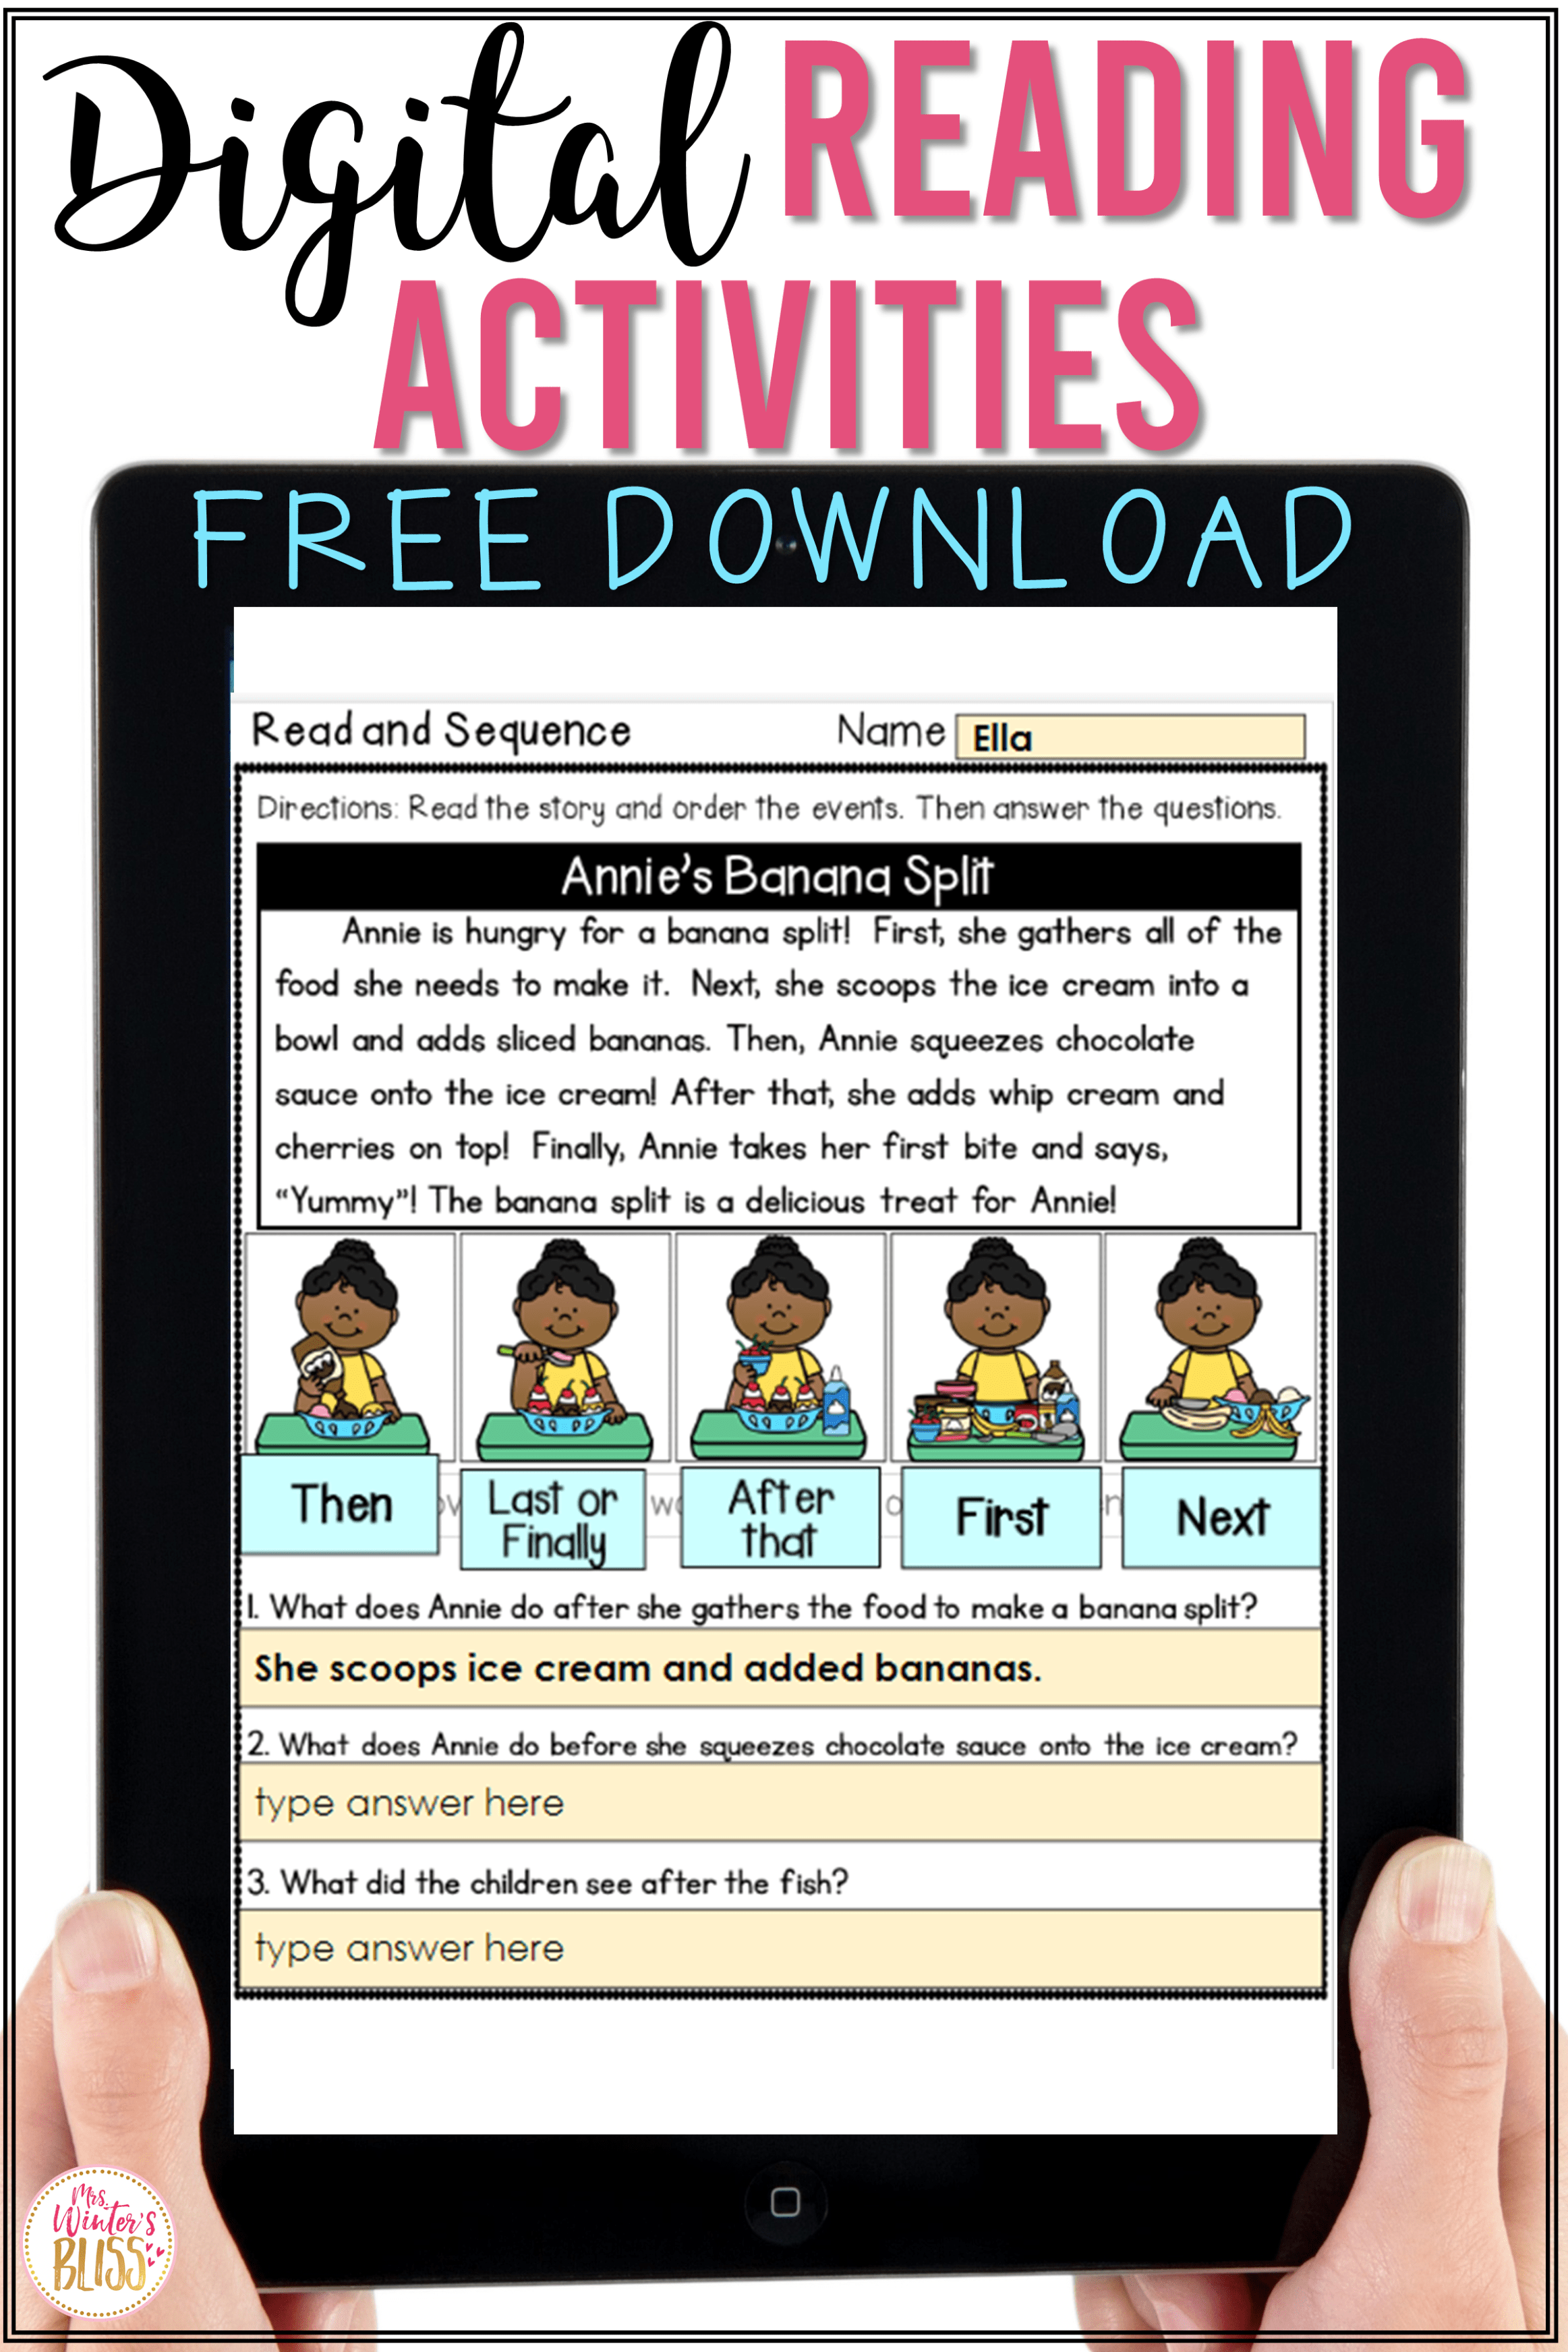 Digital Reading Activities For Elementary Students In